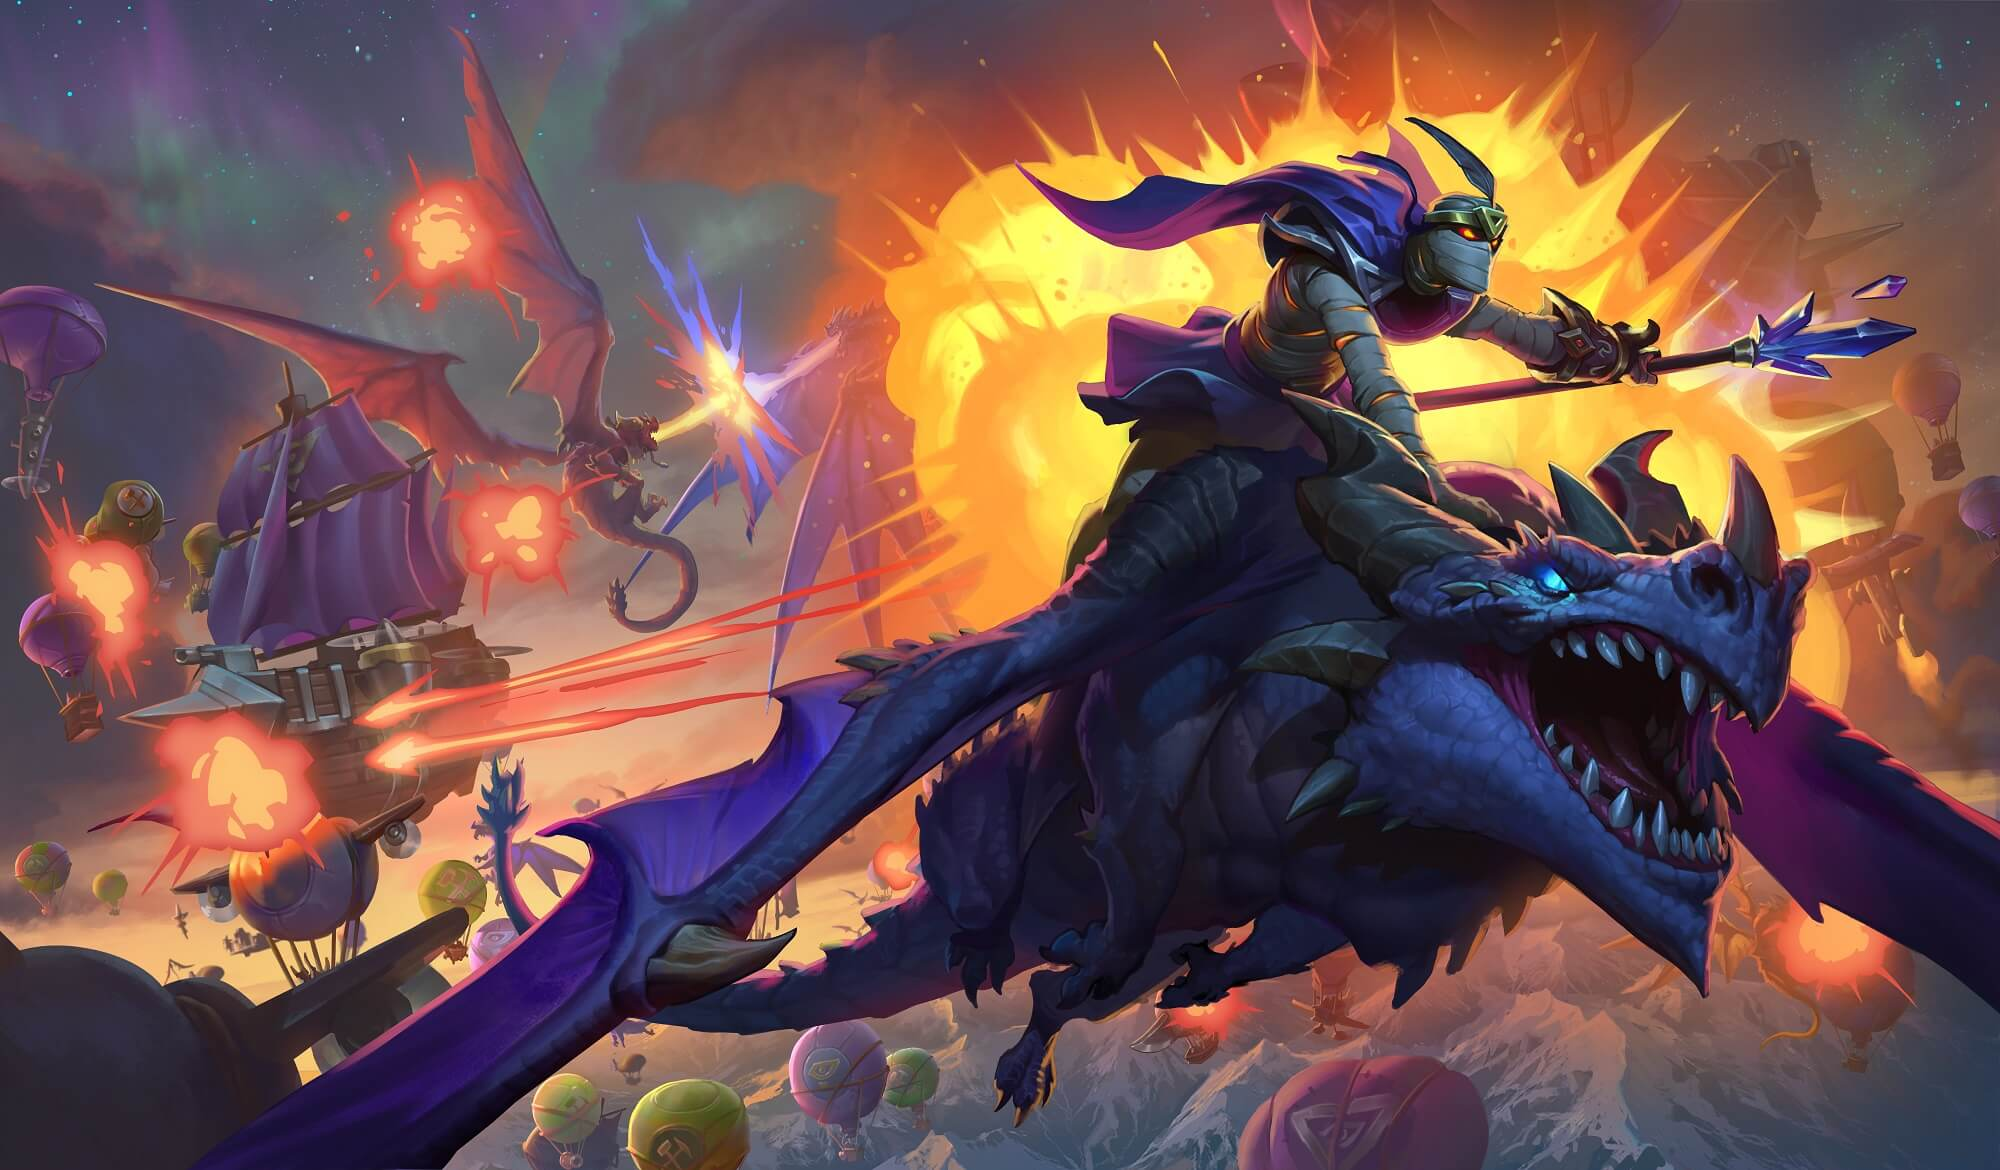 Descent Of Dragons Warcraft S Best And Worst Dragons Come To Hearthstone Noticias De Wowhead Мистическая броня и дракон от zerofrost / zerofrost mythical armors and dragon. worst dragons come to hearthstone